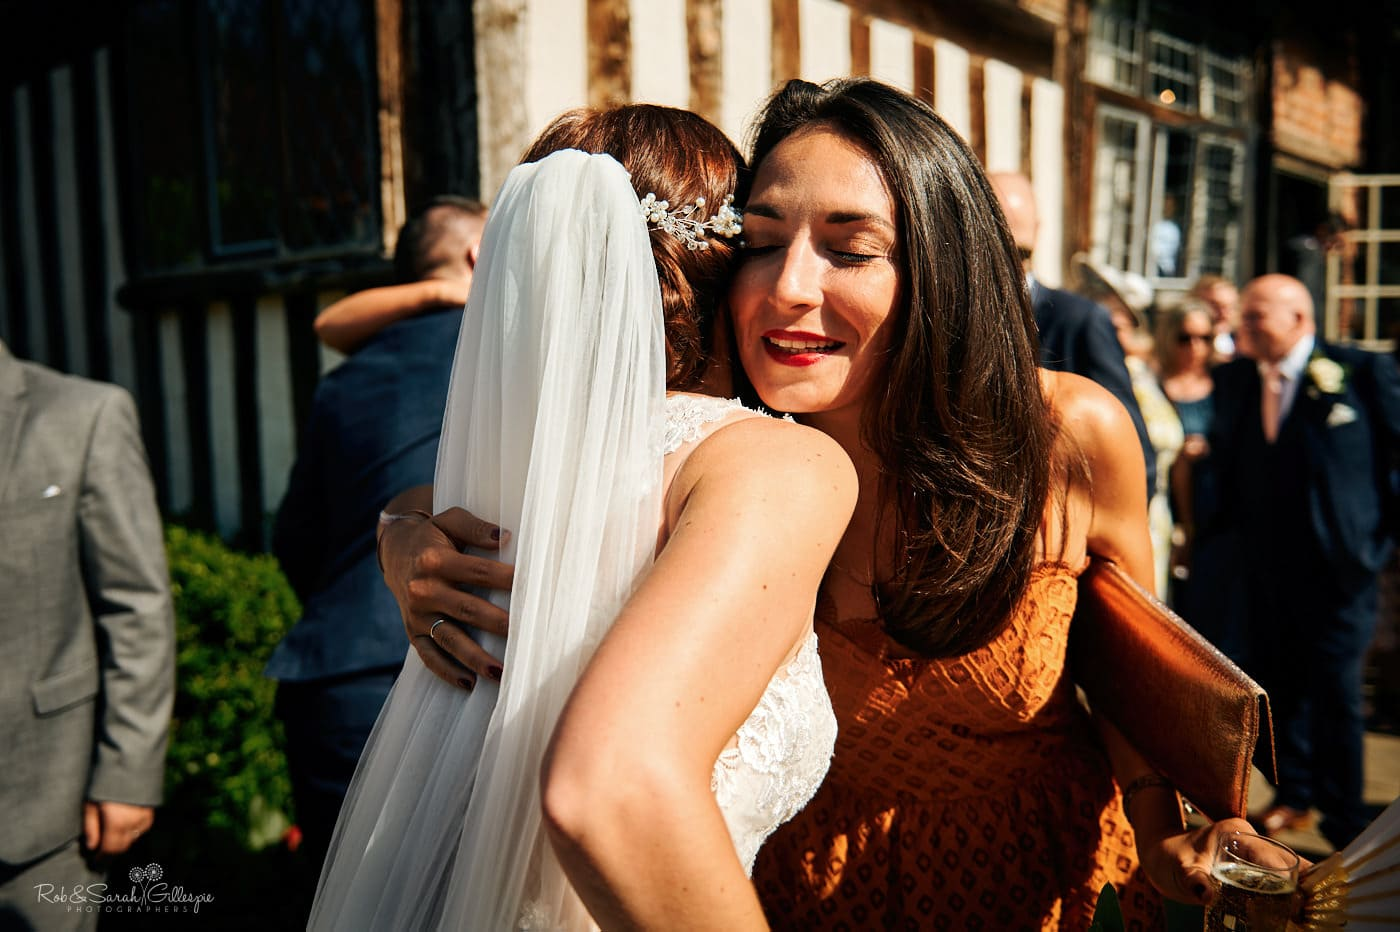 Wedding guest hugs bride after ceremony at Gorcott Hall